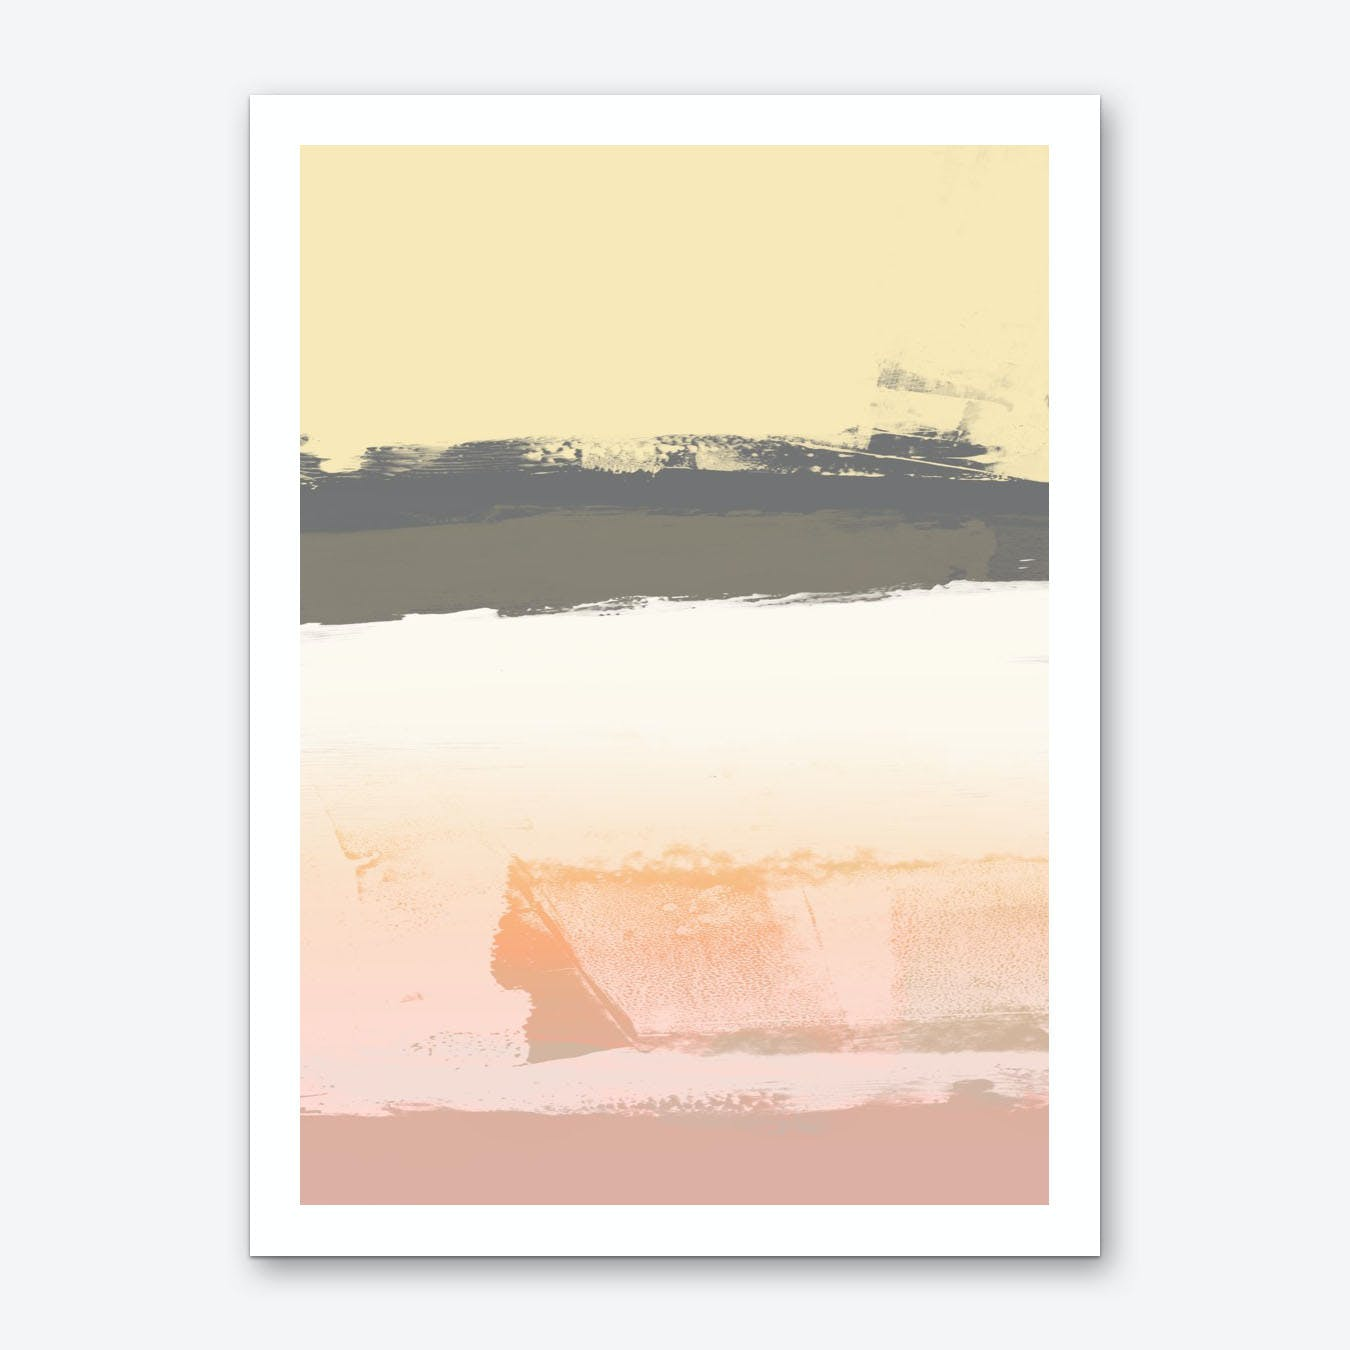 Subtle Yellow Peach Expressive Abstract Art Print